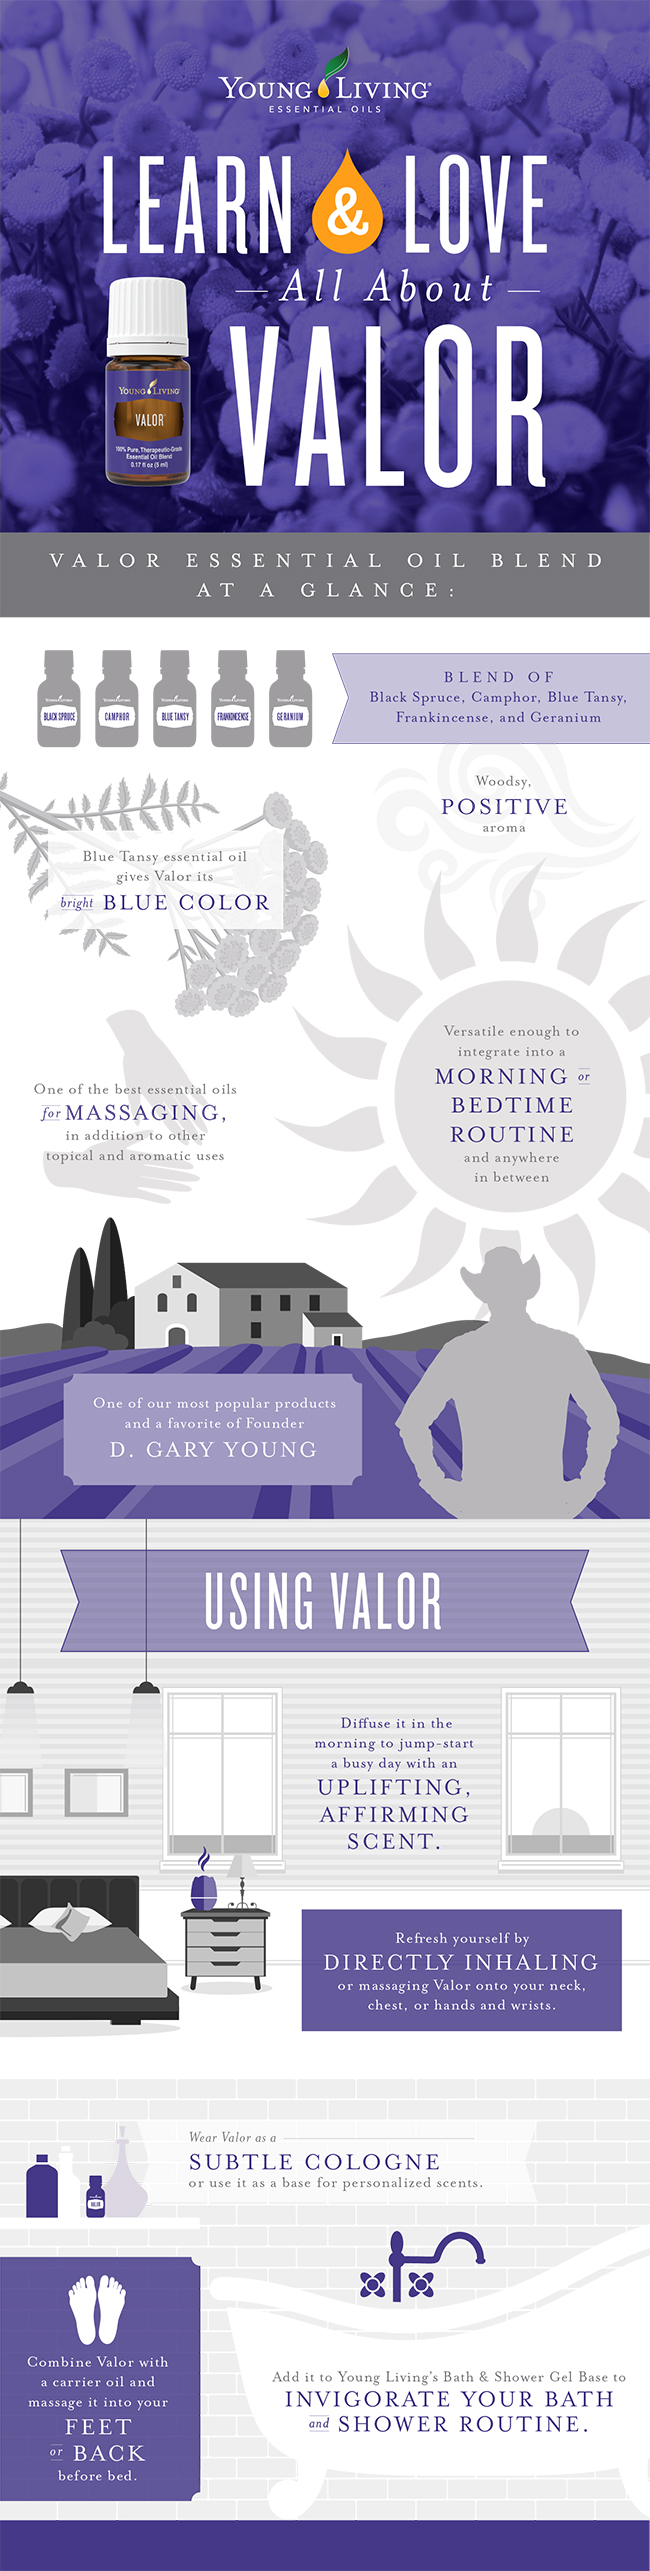 Young Living Valor Infographic